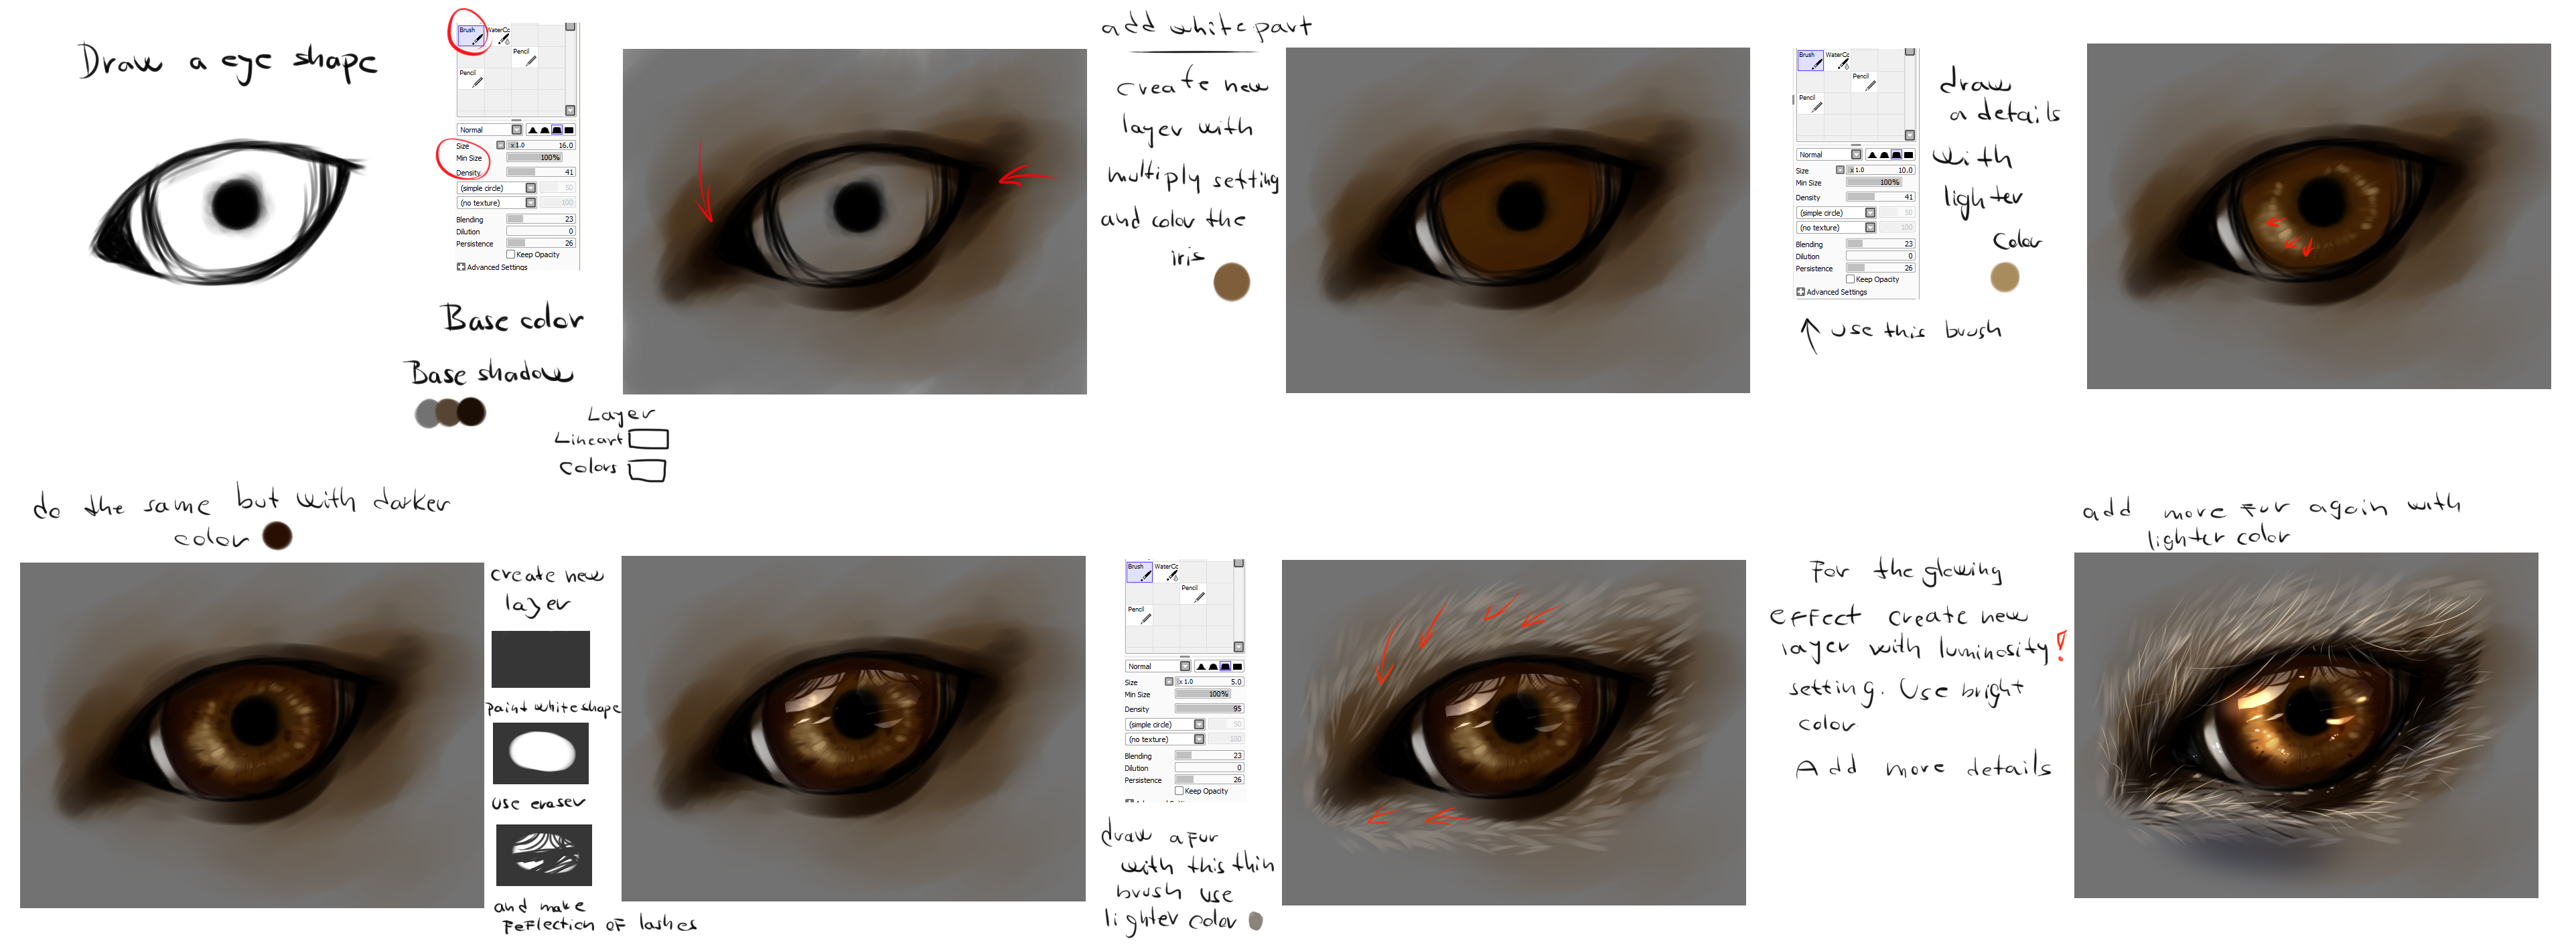 Easy wolf eye tutorial by ryky on deviantart easy wolf eye tutorial by ryky ccuart Image collections